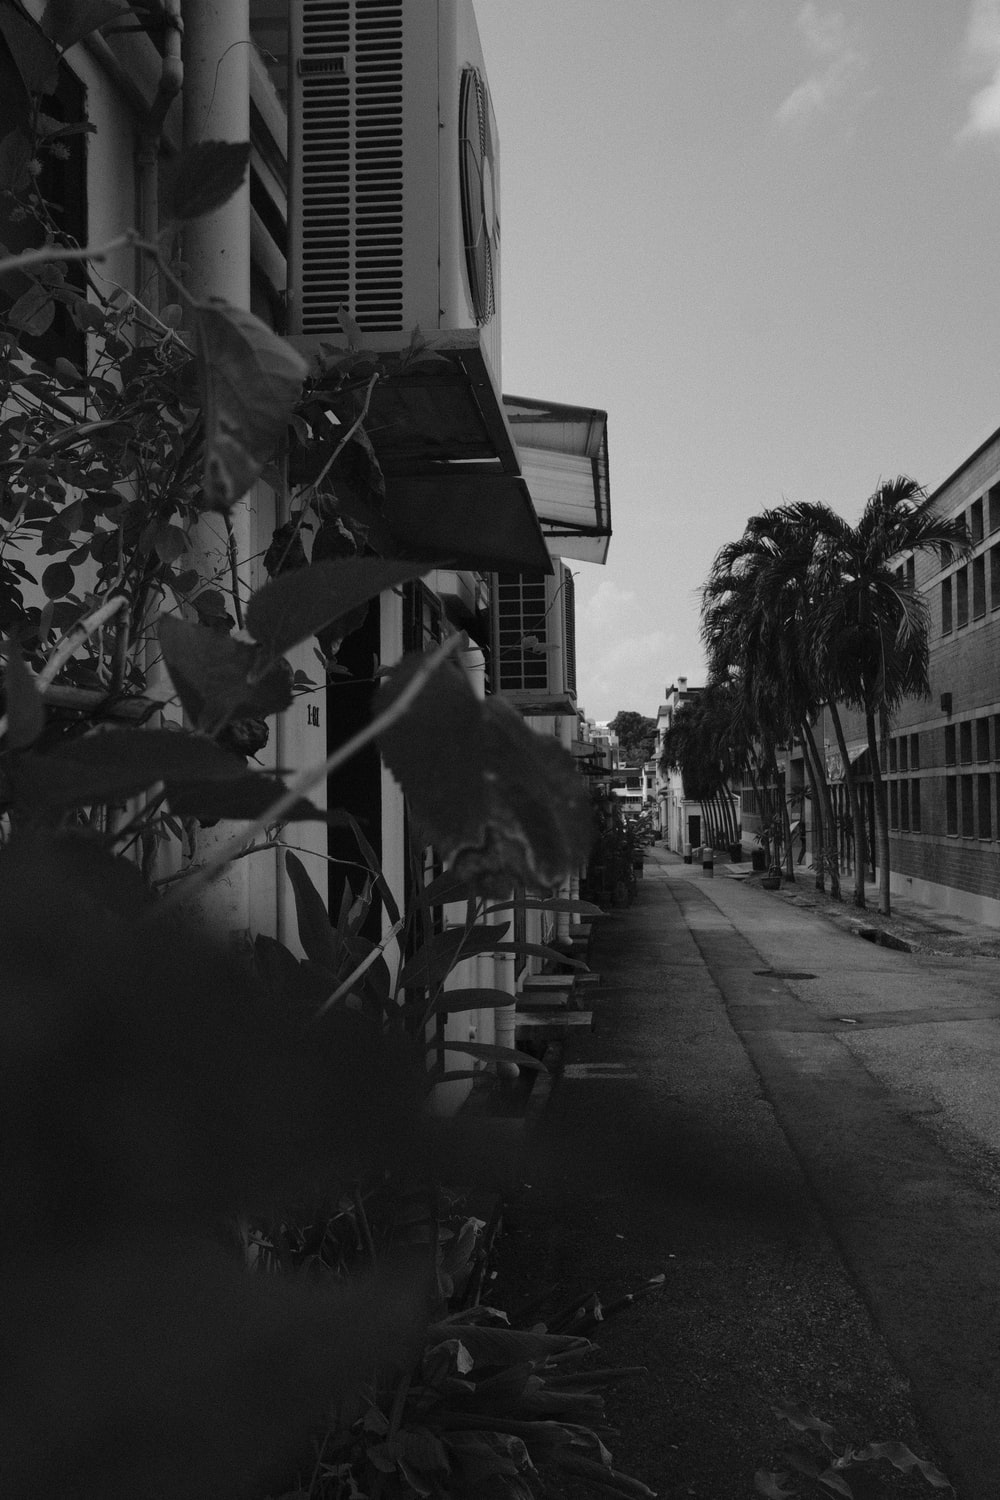 grayscale photo of palm trees near building